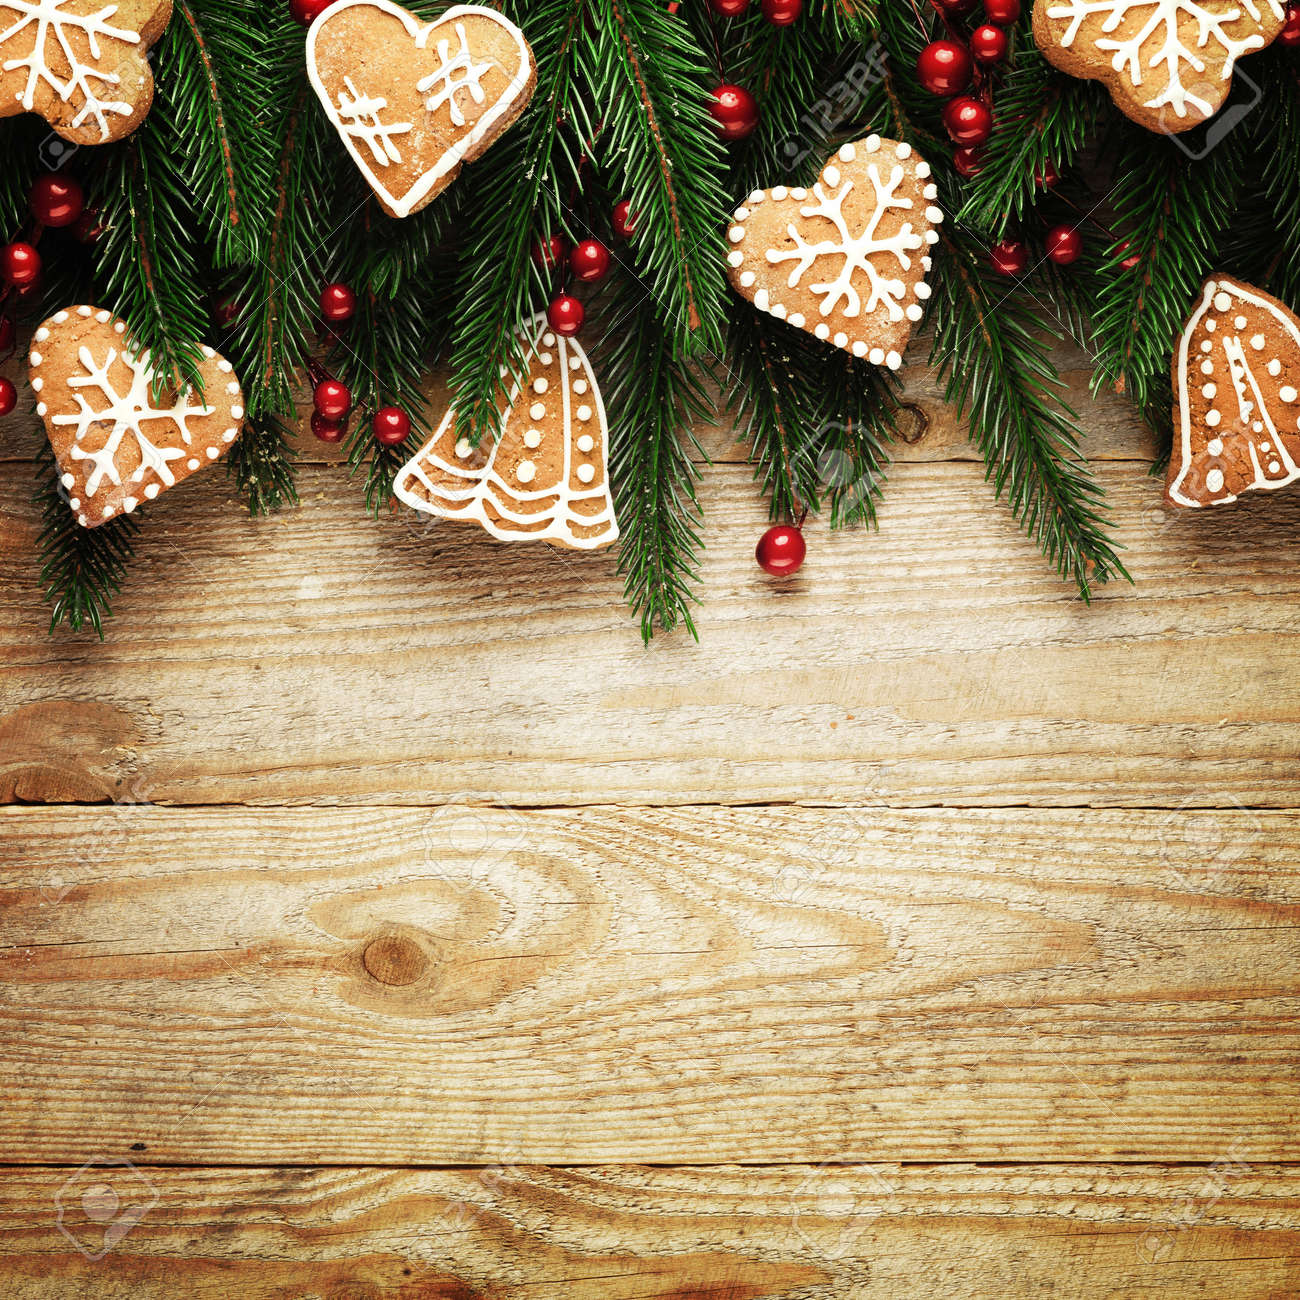 Christmas fir tree with decoration on a wooden board - 157175257